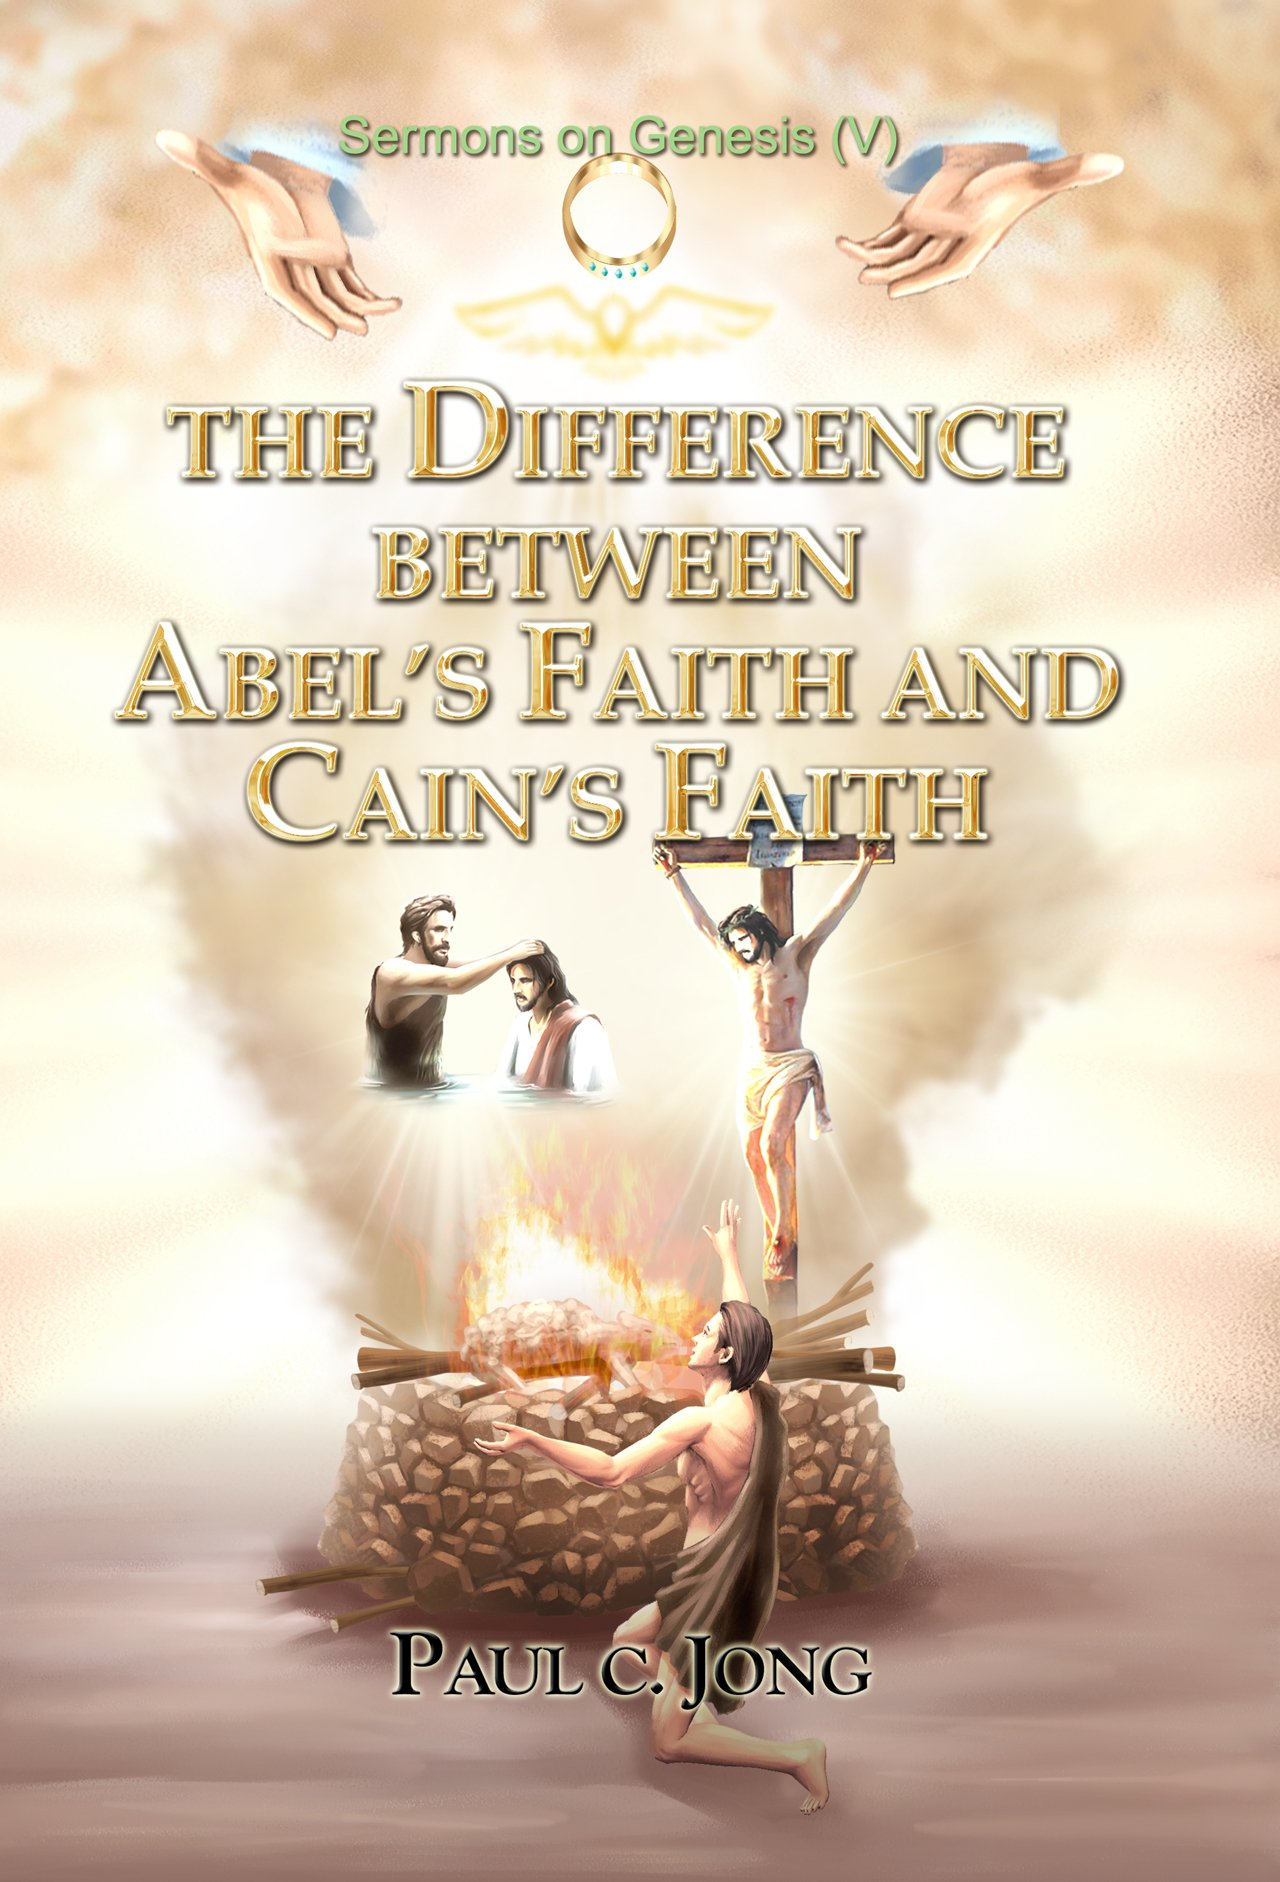 Download The Difference between Abel's Faith and Cain's Faith - Sermons on Genesis(V) pdf